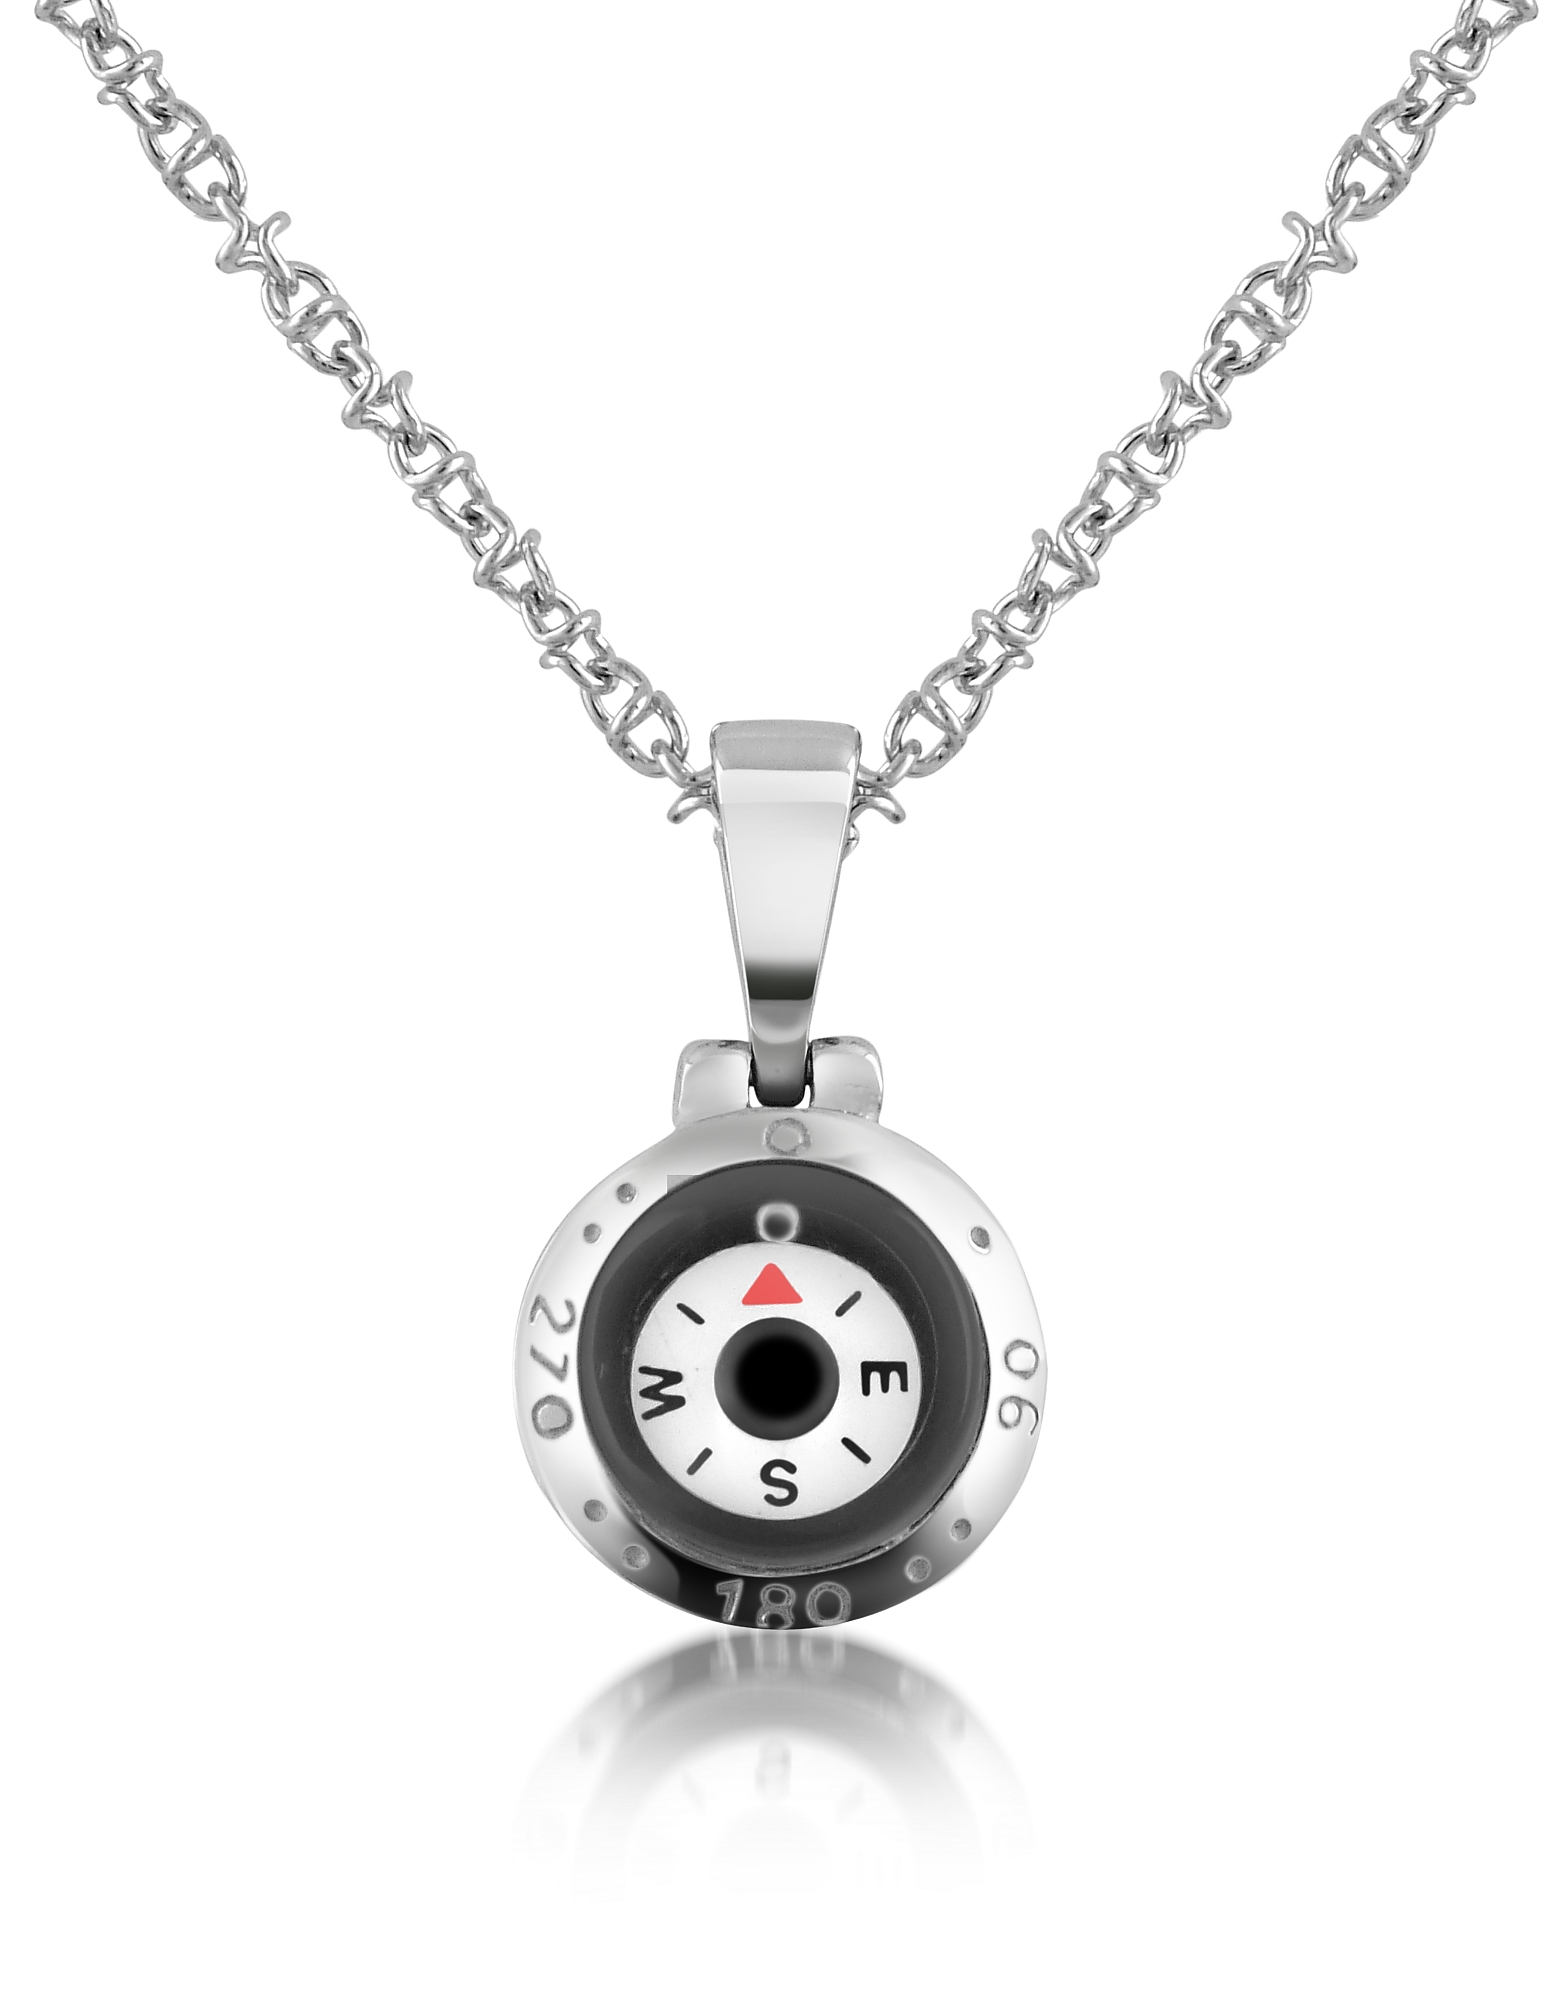 Forzieri Men's Necklaces, Stainless Steel Compass Pendant Necklace